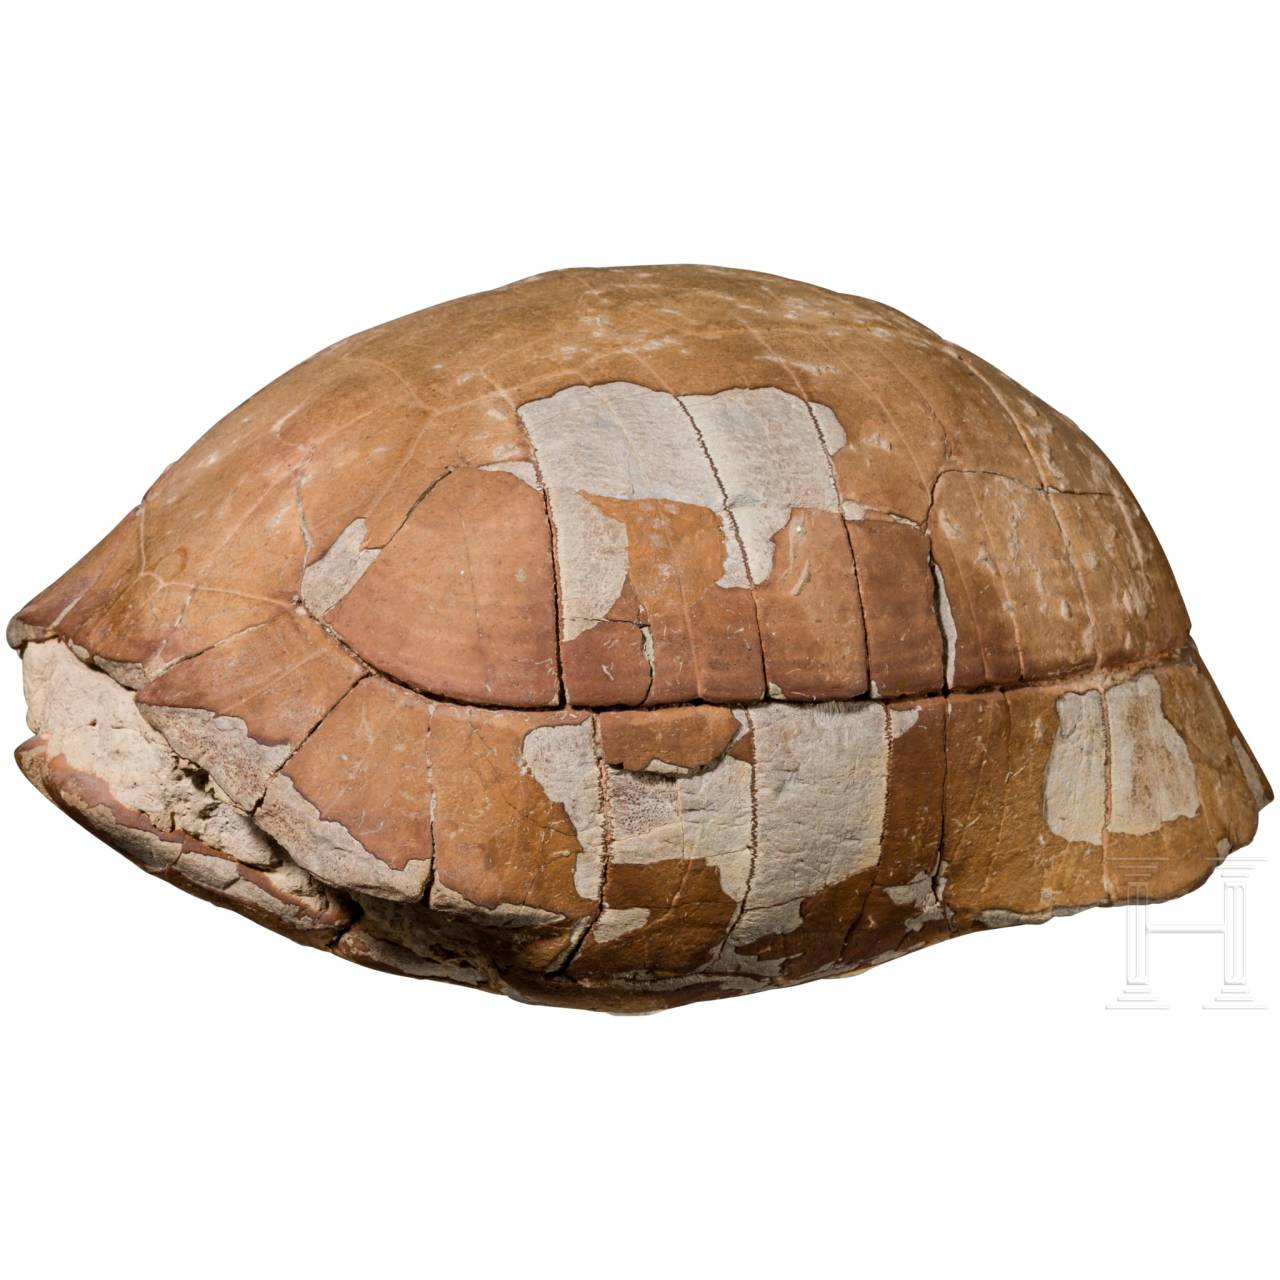 A large fossilised turtle shell